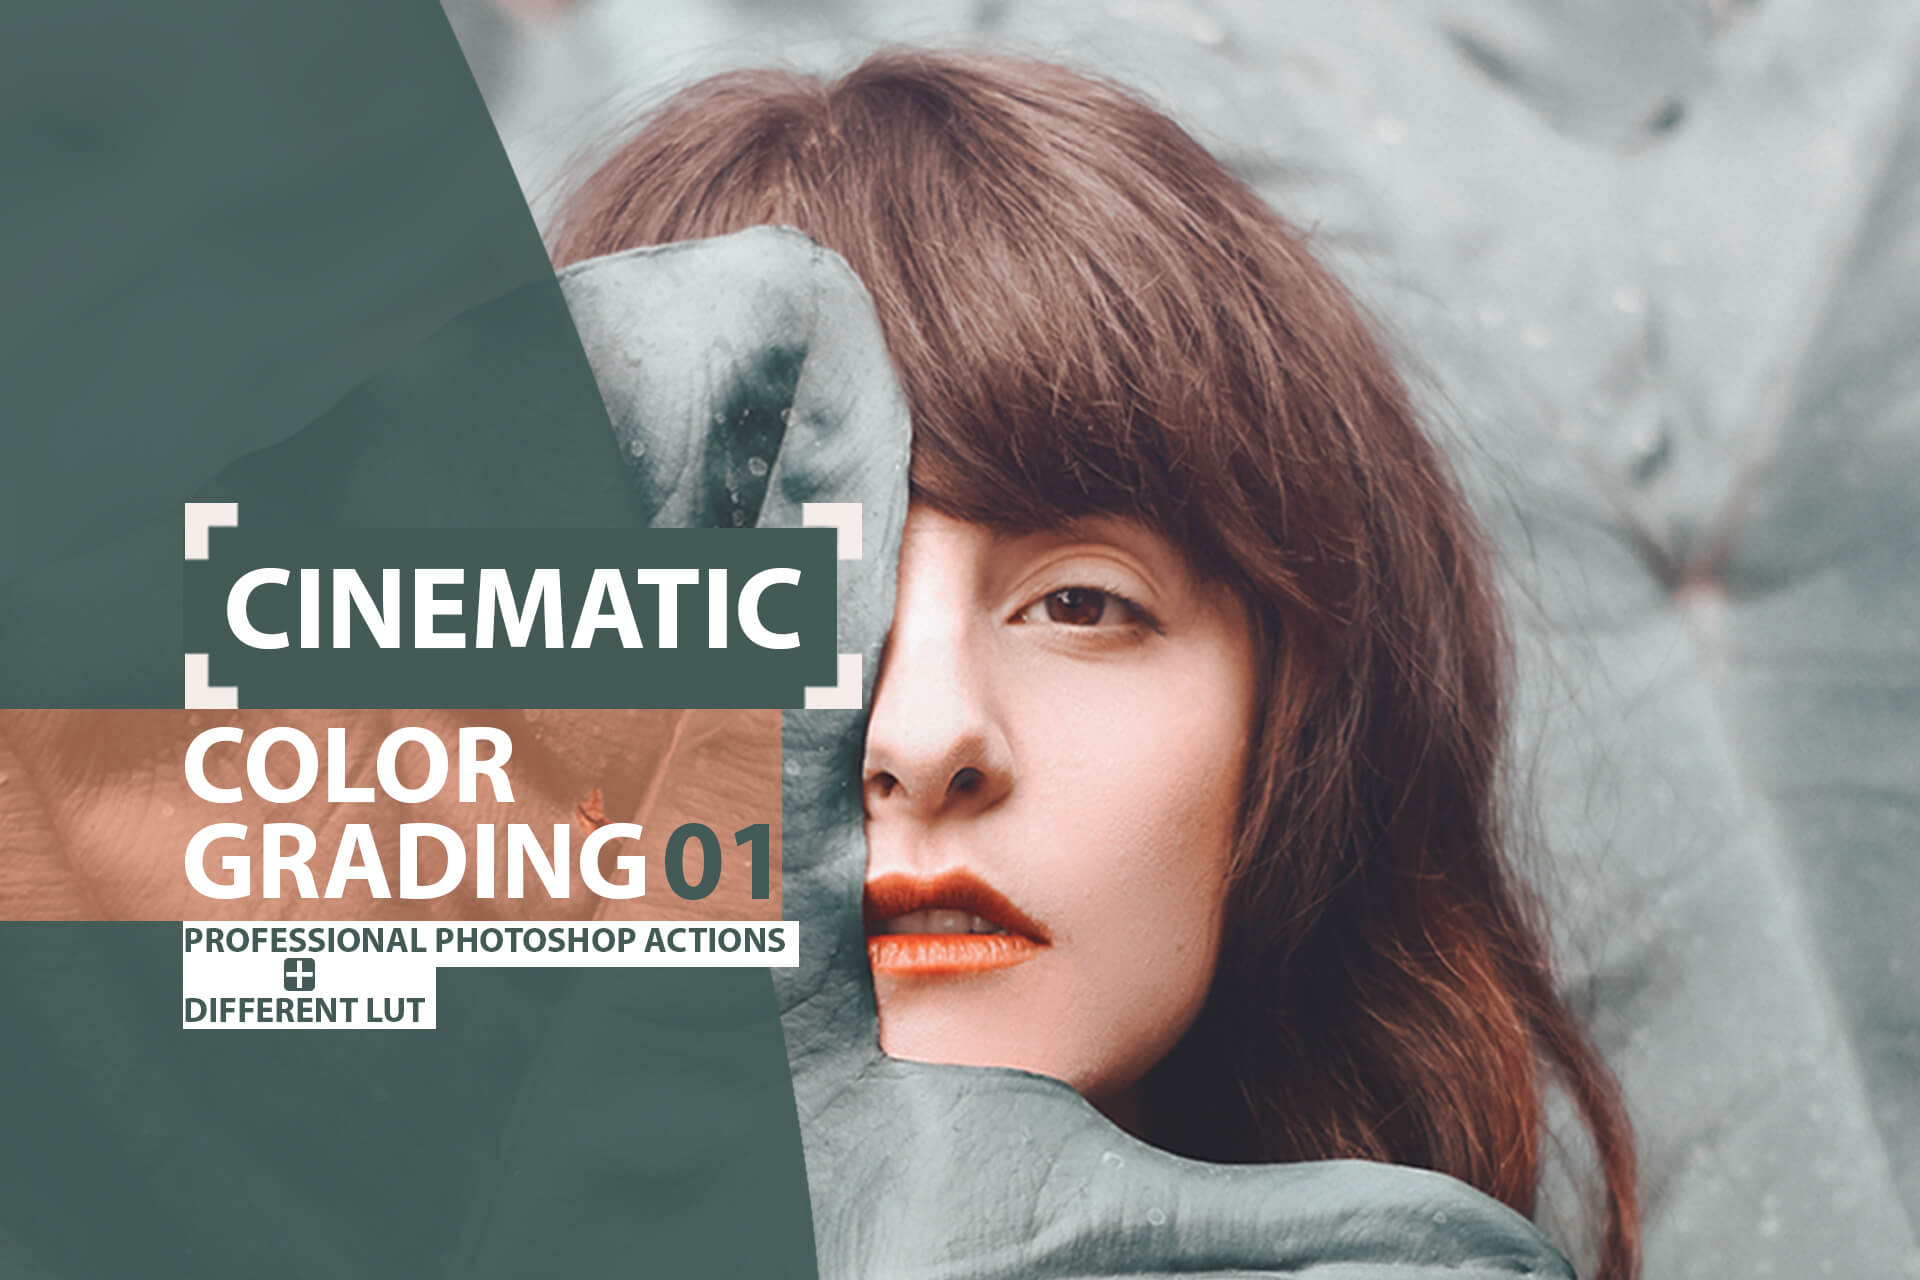 Cinematic Color Grading 01 Premium photoshop action example image 1